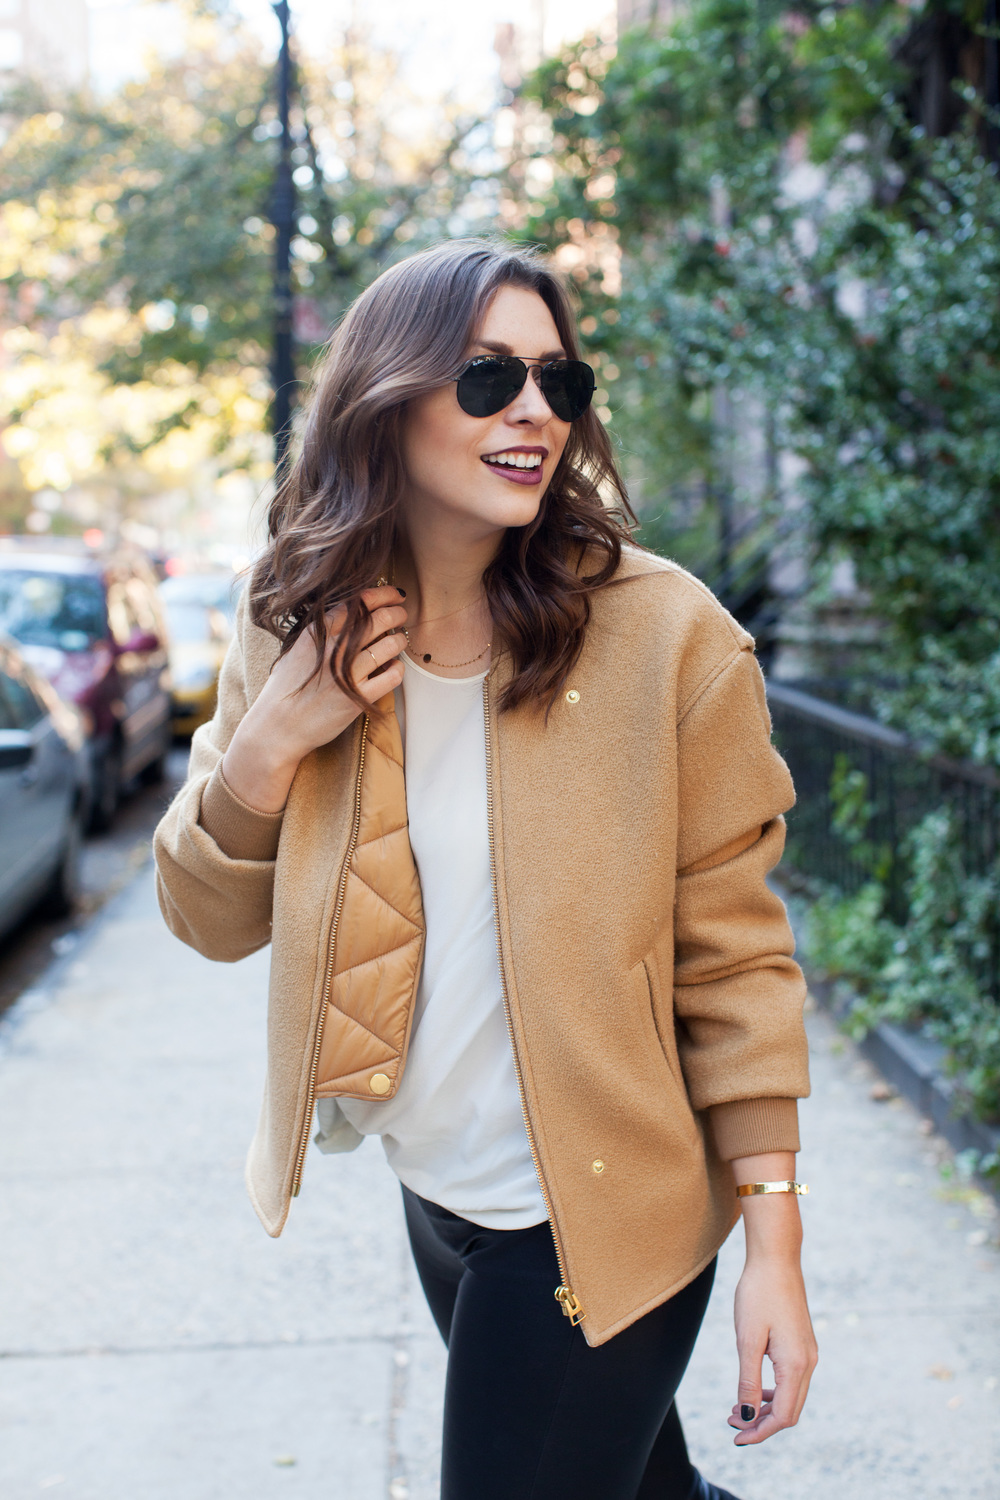 camel wool H&M bomber jacket, helmut lang black leather leggings, otte silk t shirt, black leather freda salvador chelsea boot booties, black ray bans fall outfit